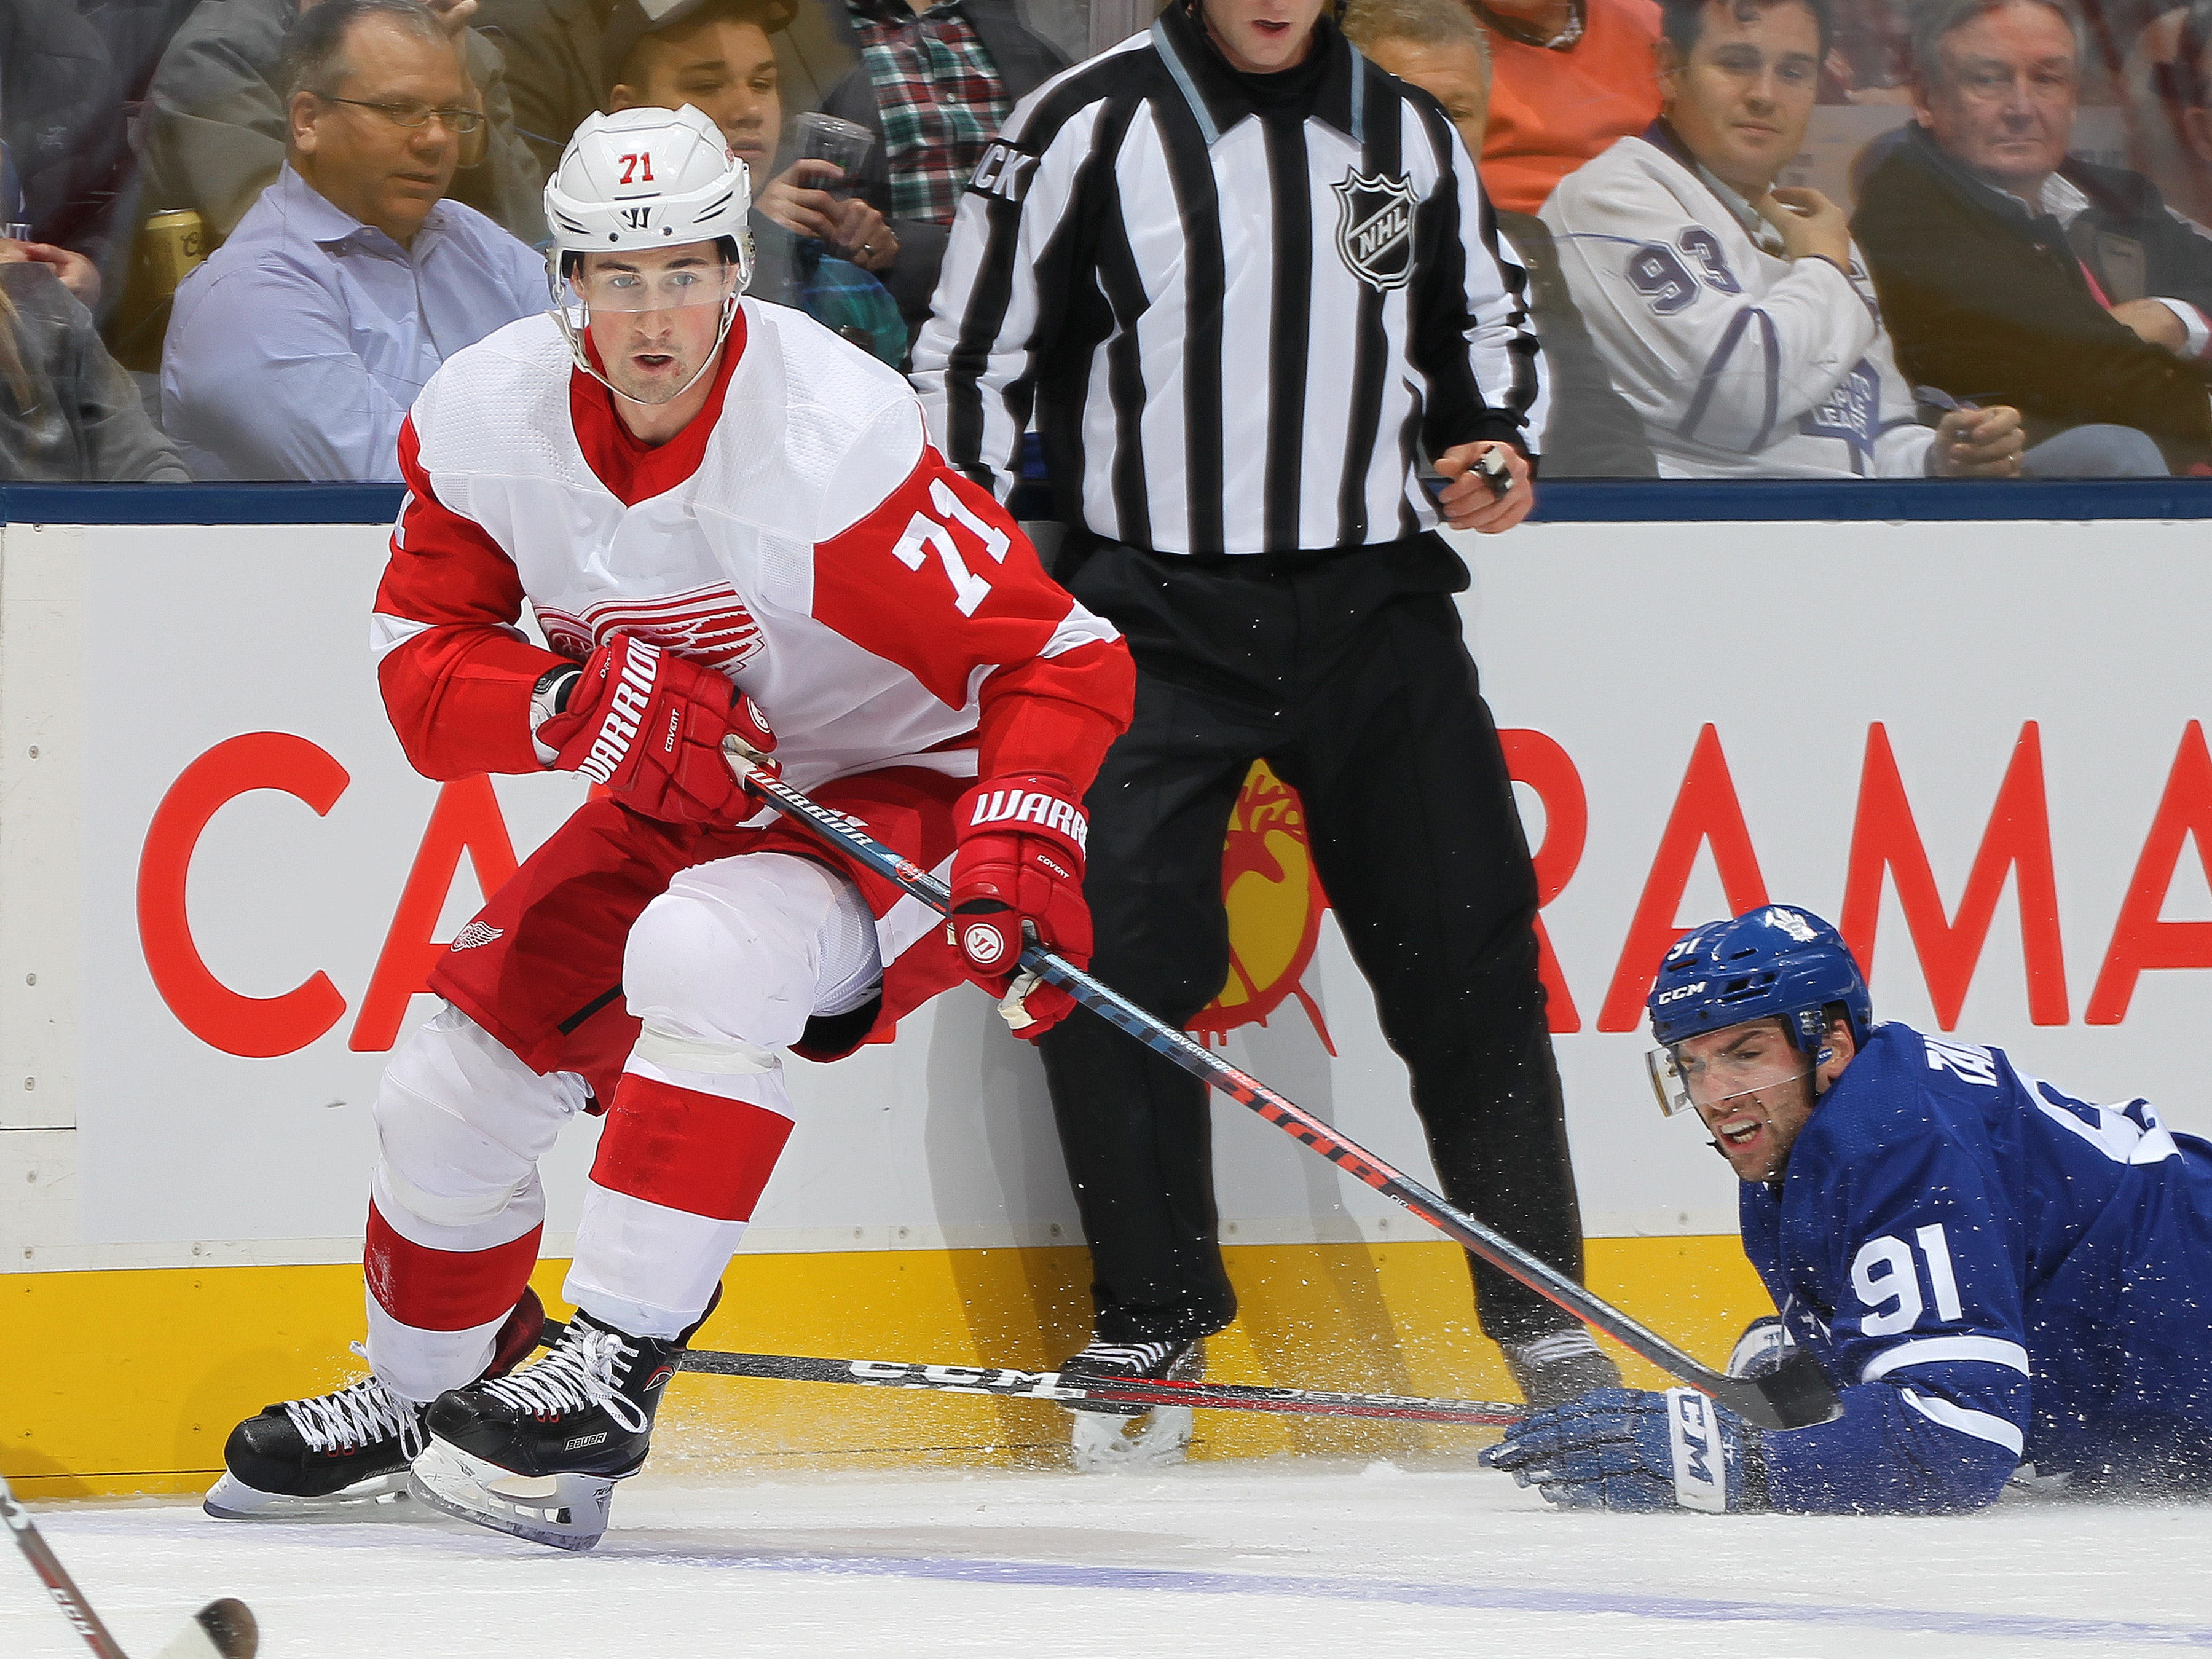 Detroit Red Wings' Dylan Larkin skates against John Tavares of the Toronto Maple Leafs at Scotiabank Arena on Dec. 6, 2018 in Toronto, Ontario, Canada.